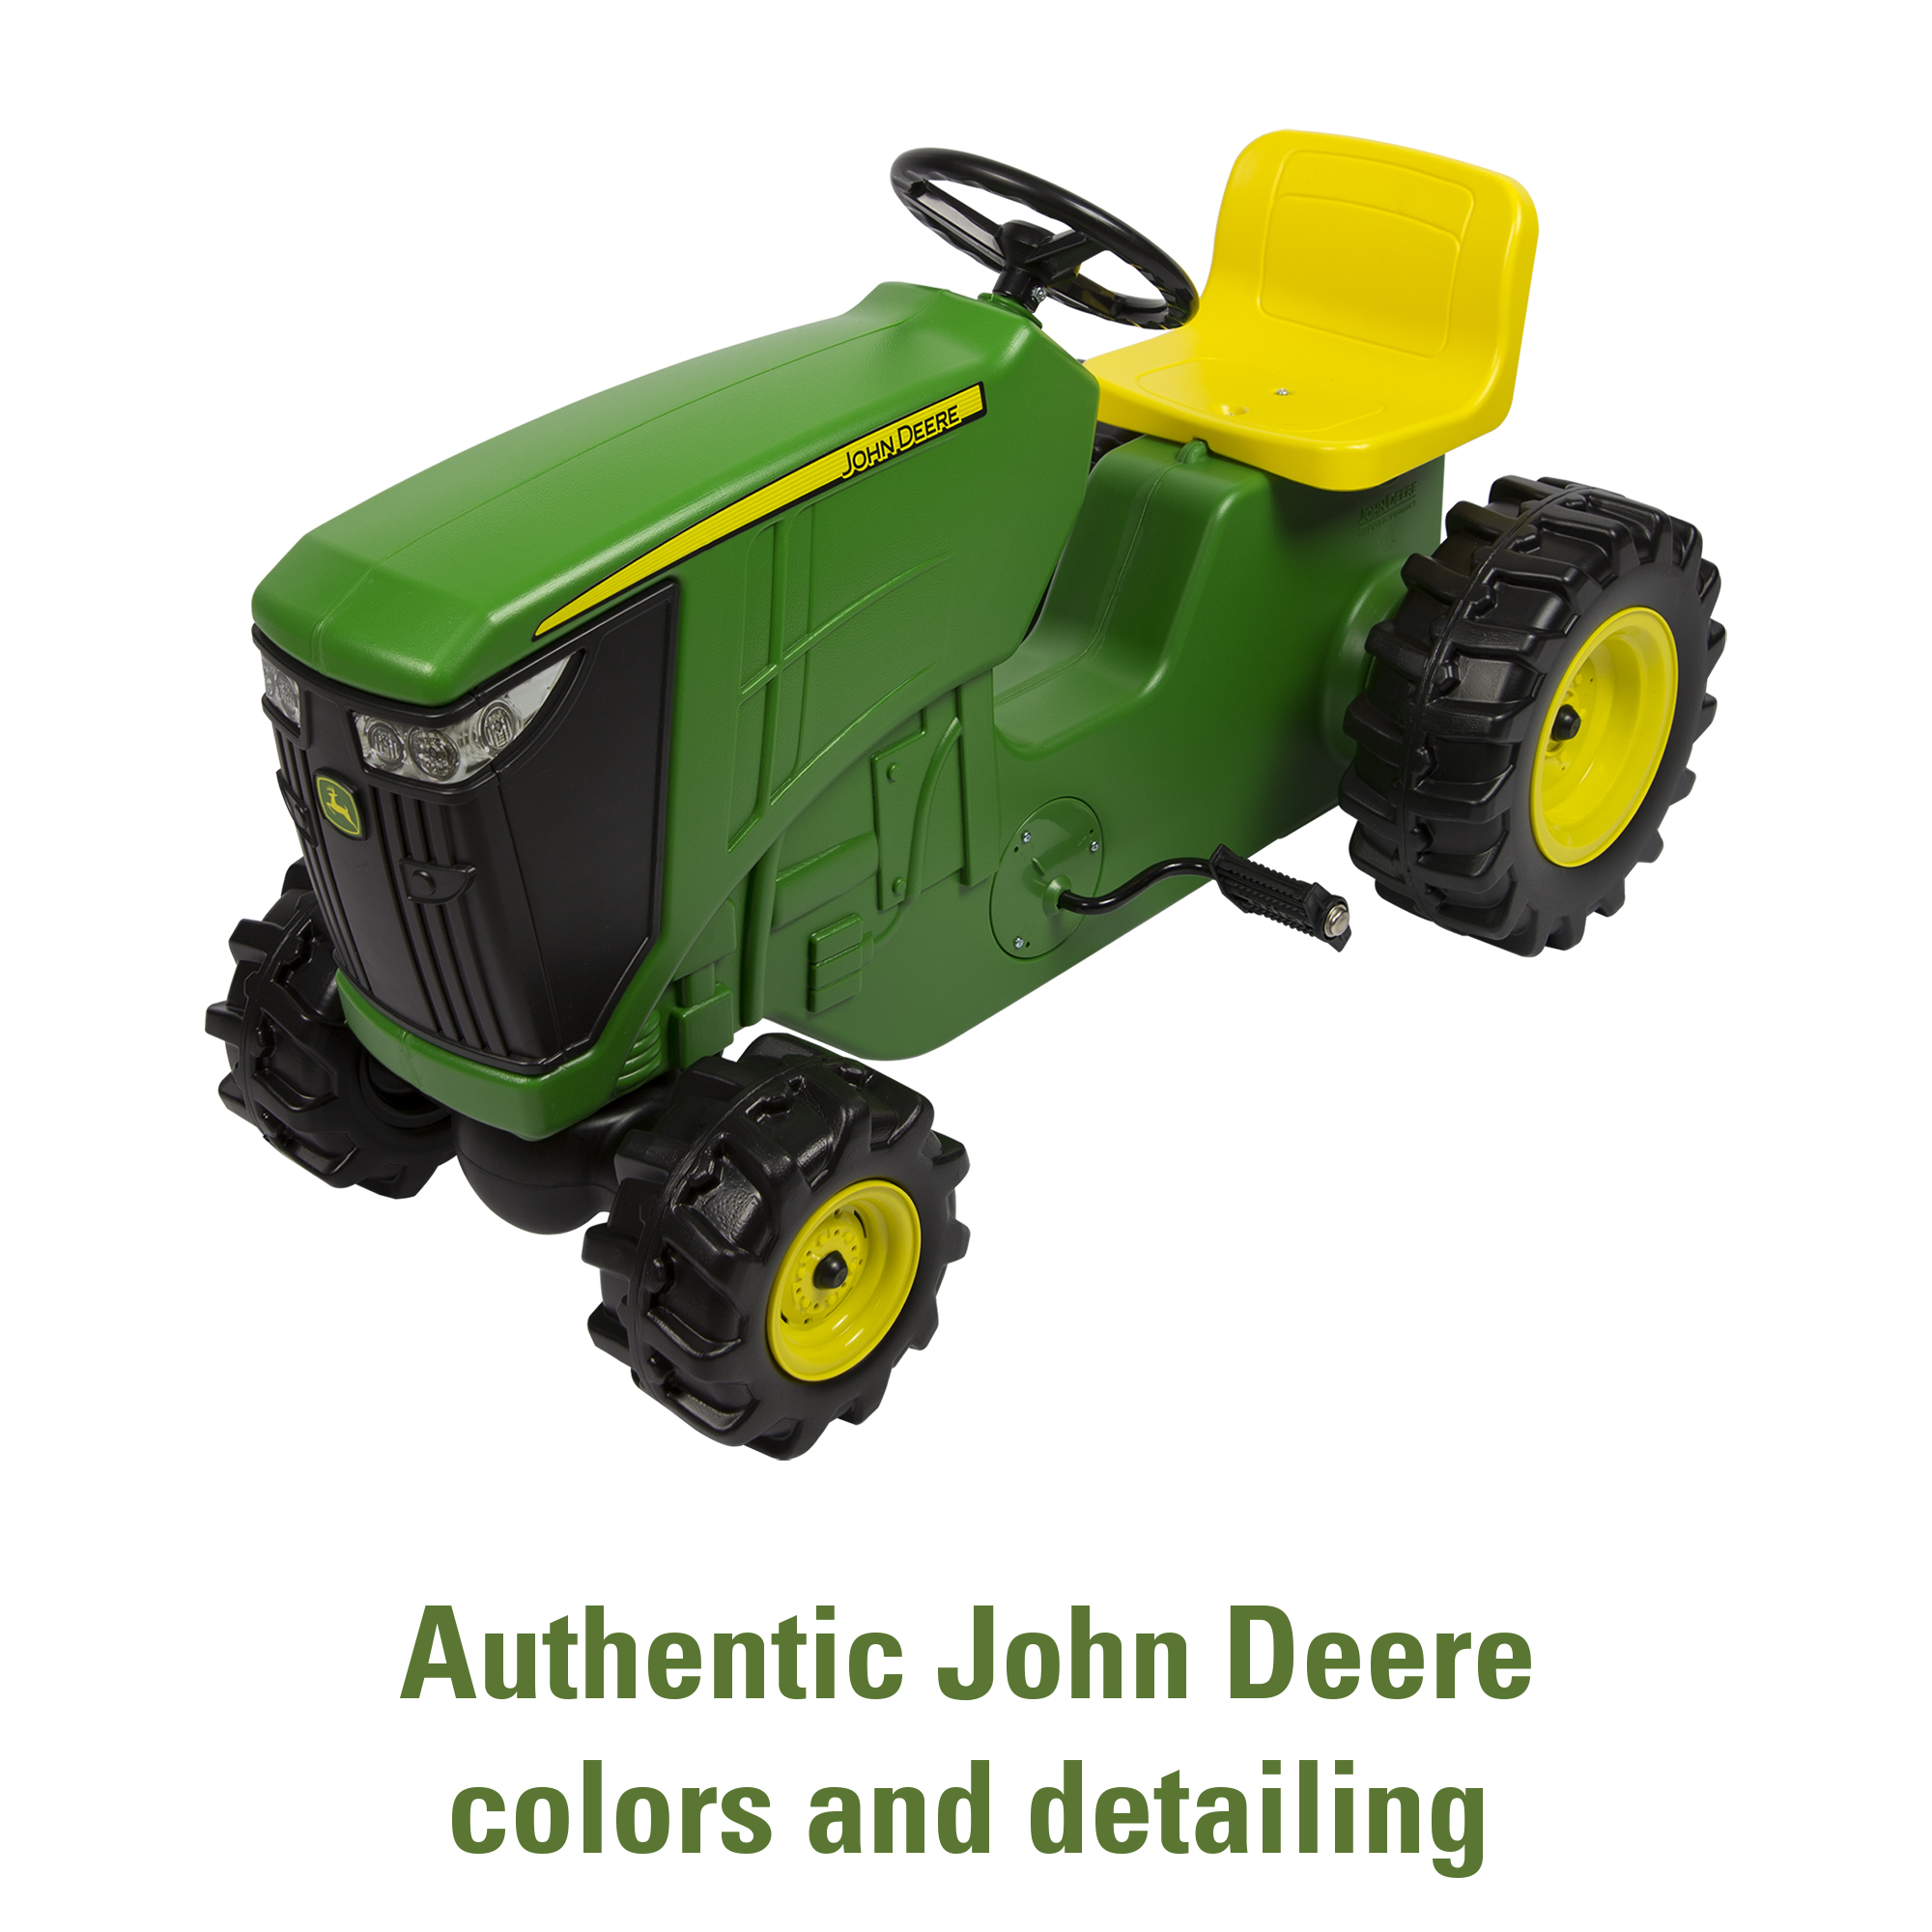 John Deere Ride On Toys >> John Deere Pedal Powered Tractor Kids Ride On Toy Tractor Green